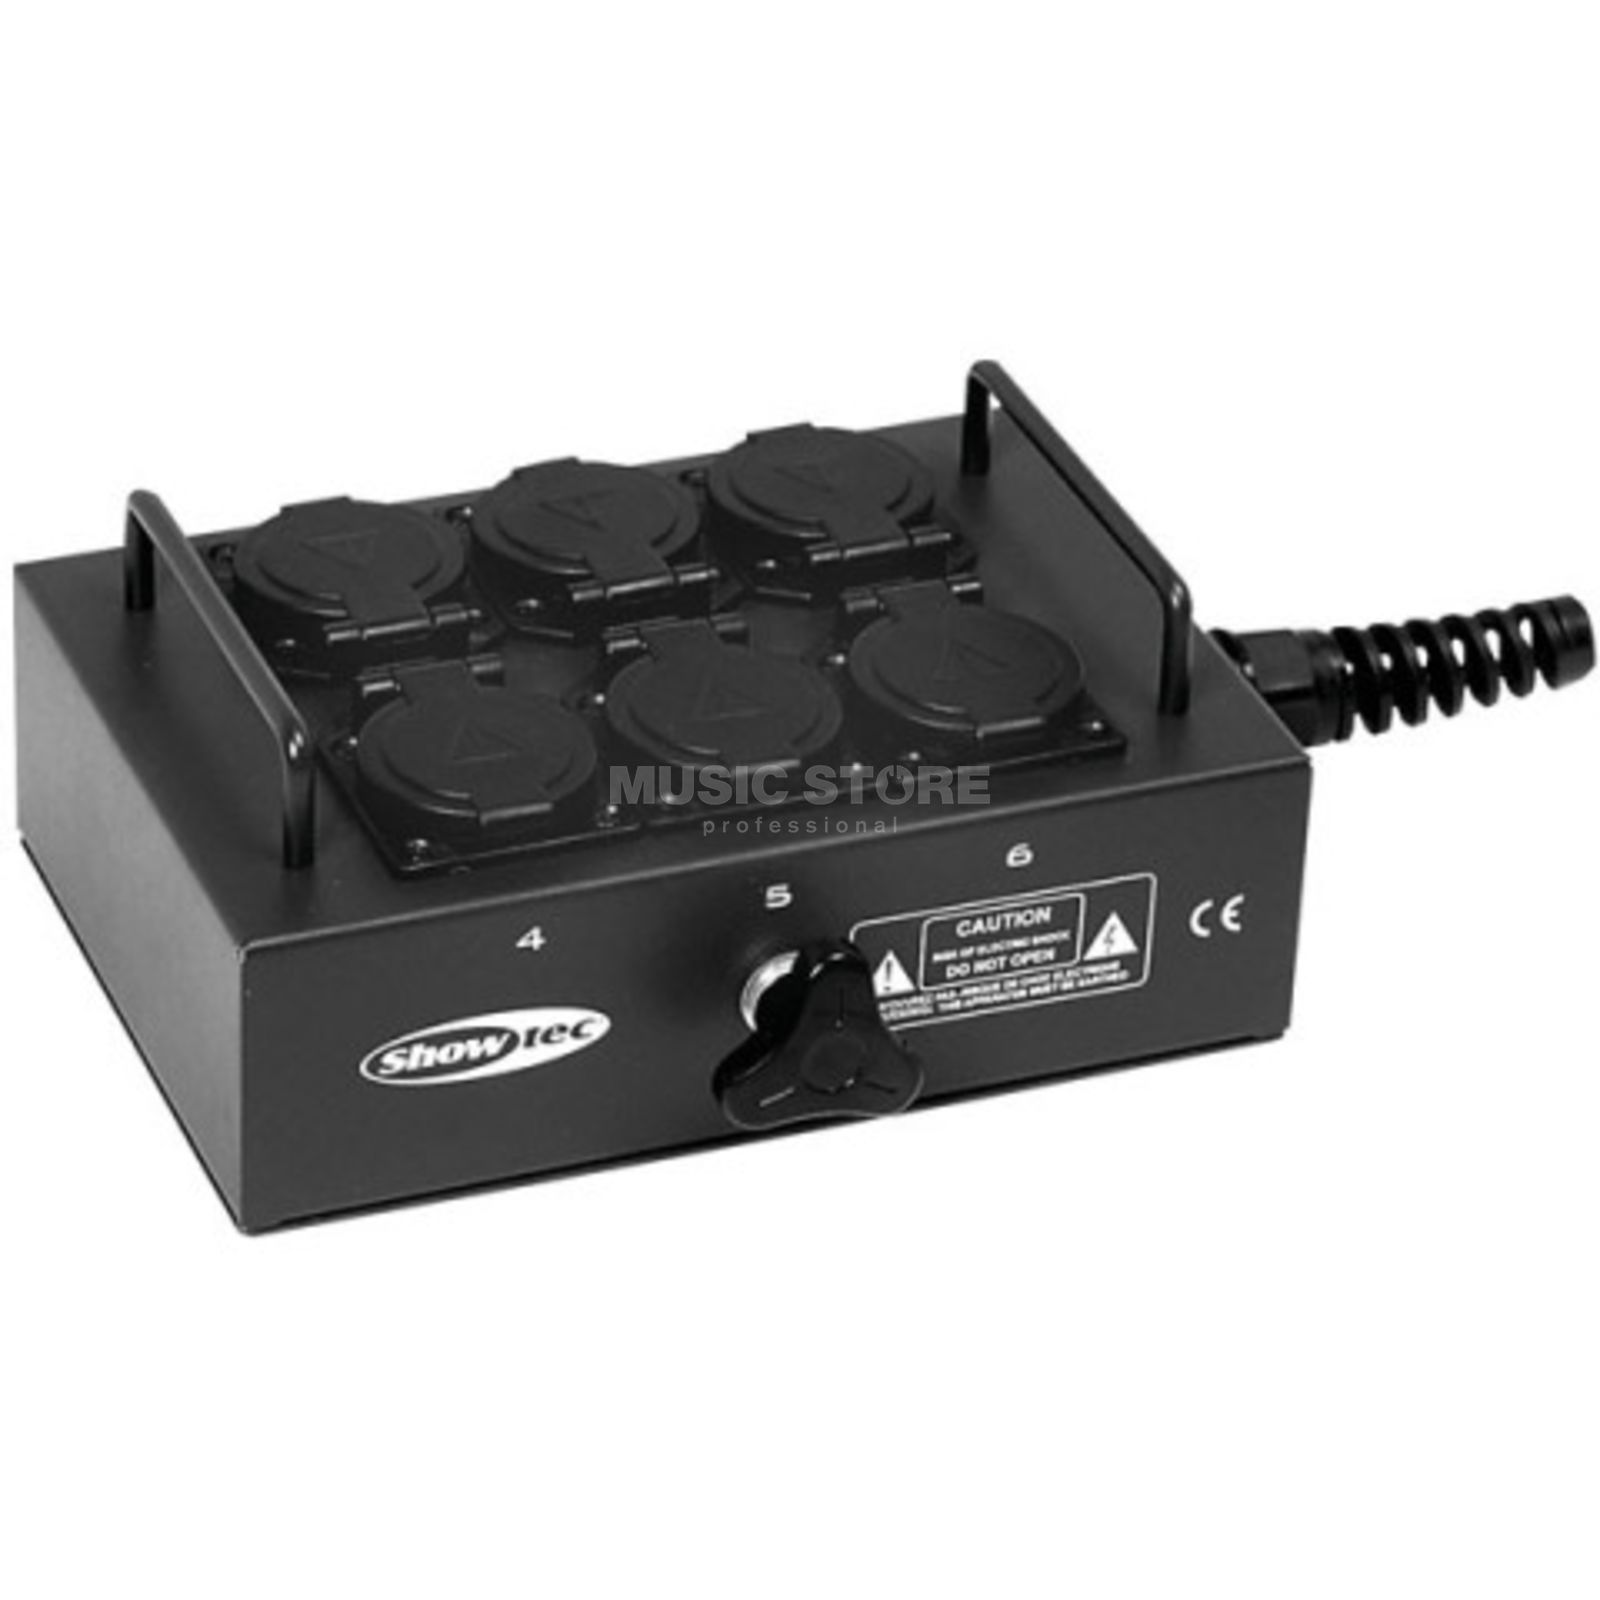 Showtec Breakout Box 6-way BO6PG Produktbillede